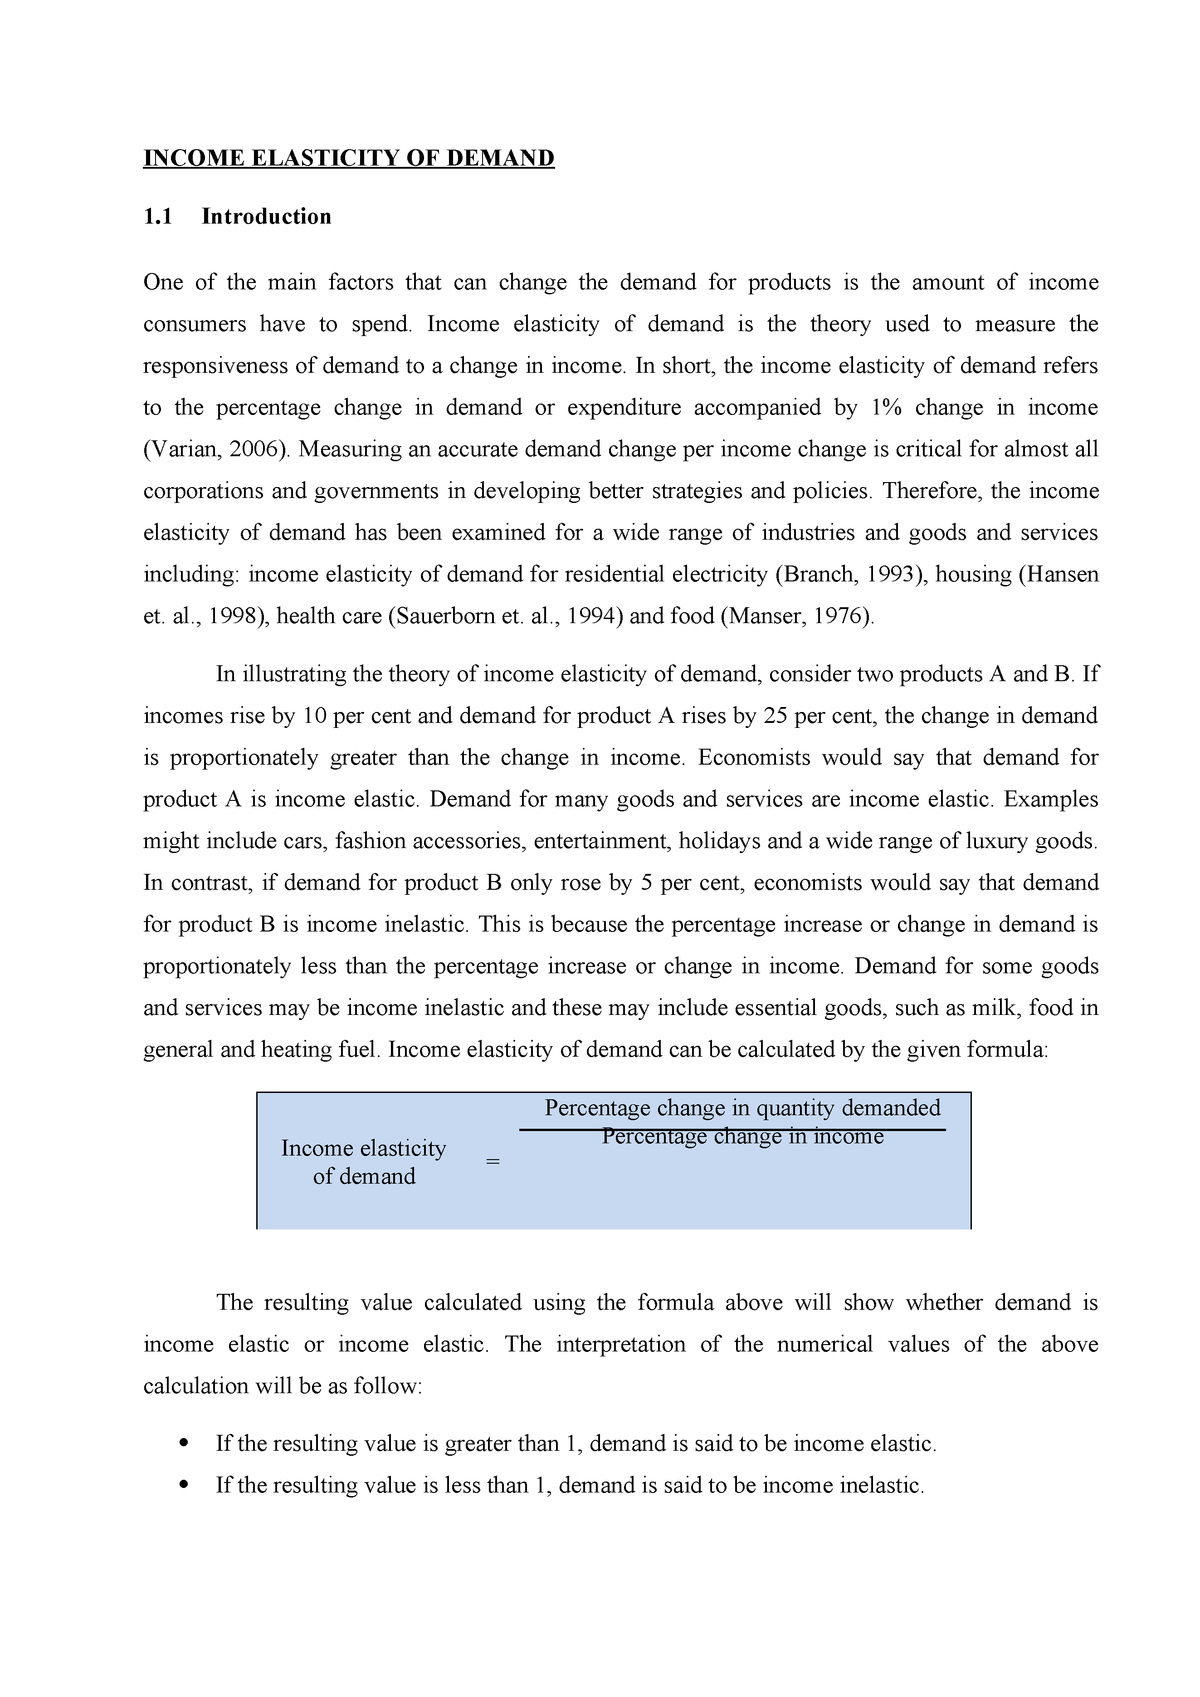 Assignment The Report Thoroughly Discussed About The Concept Of Income Elasticity Of Demand Studocu